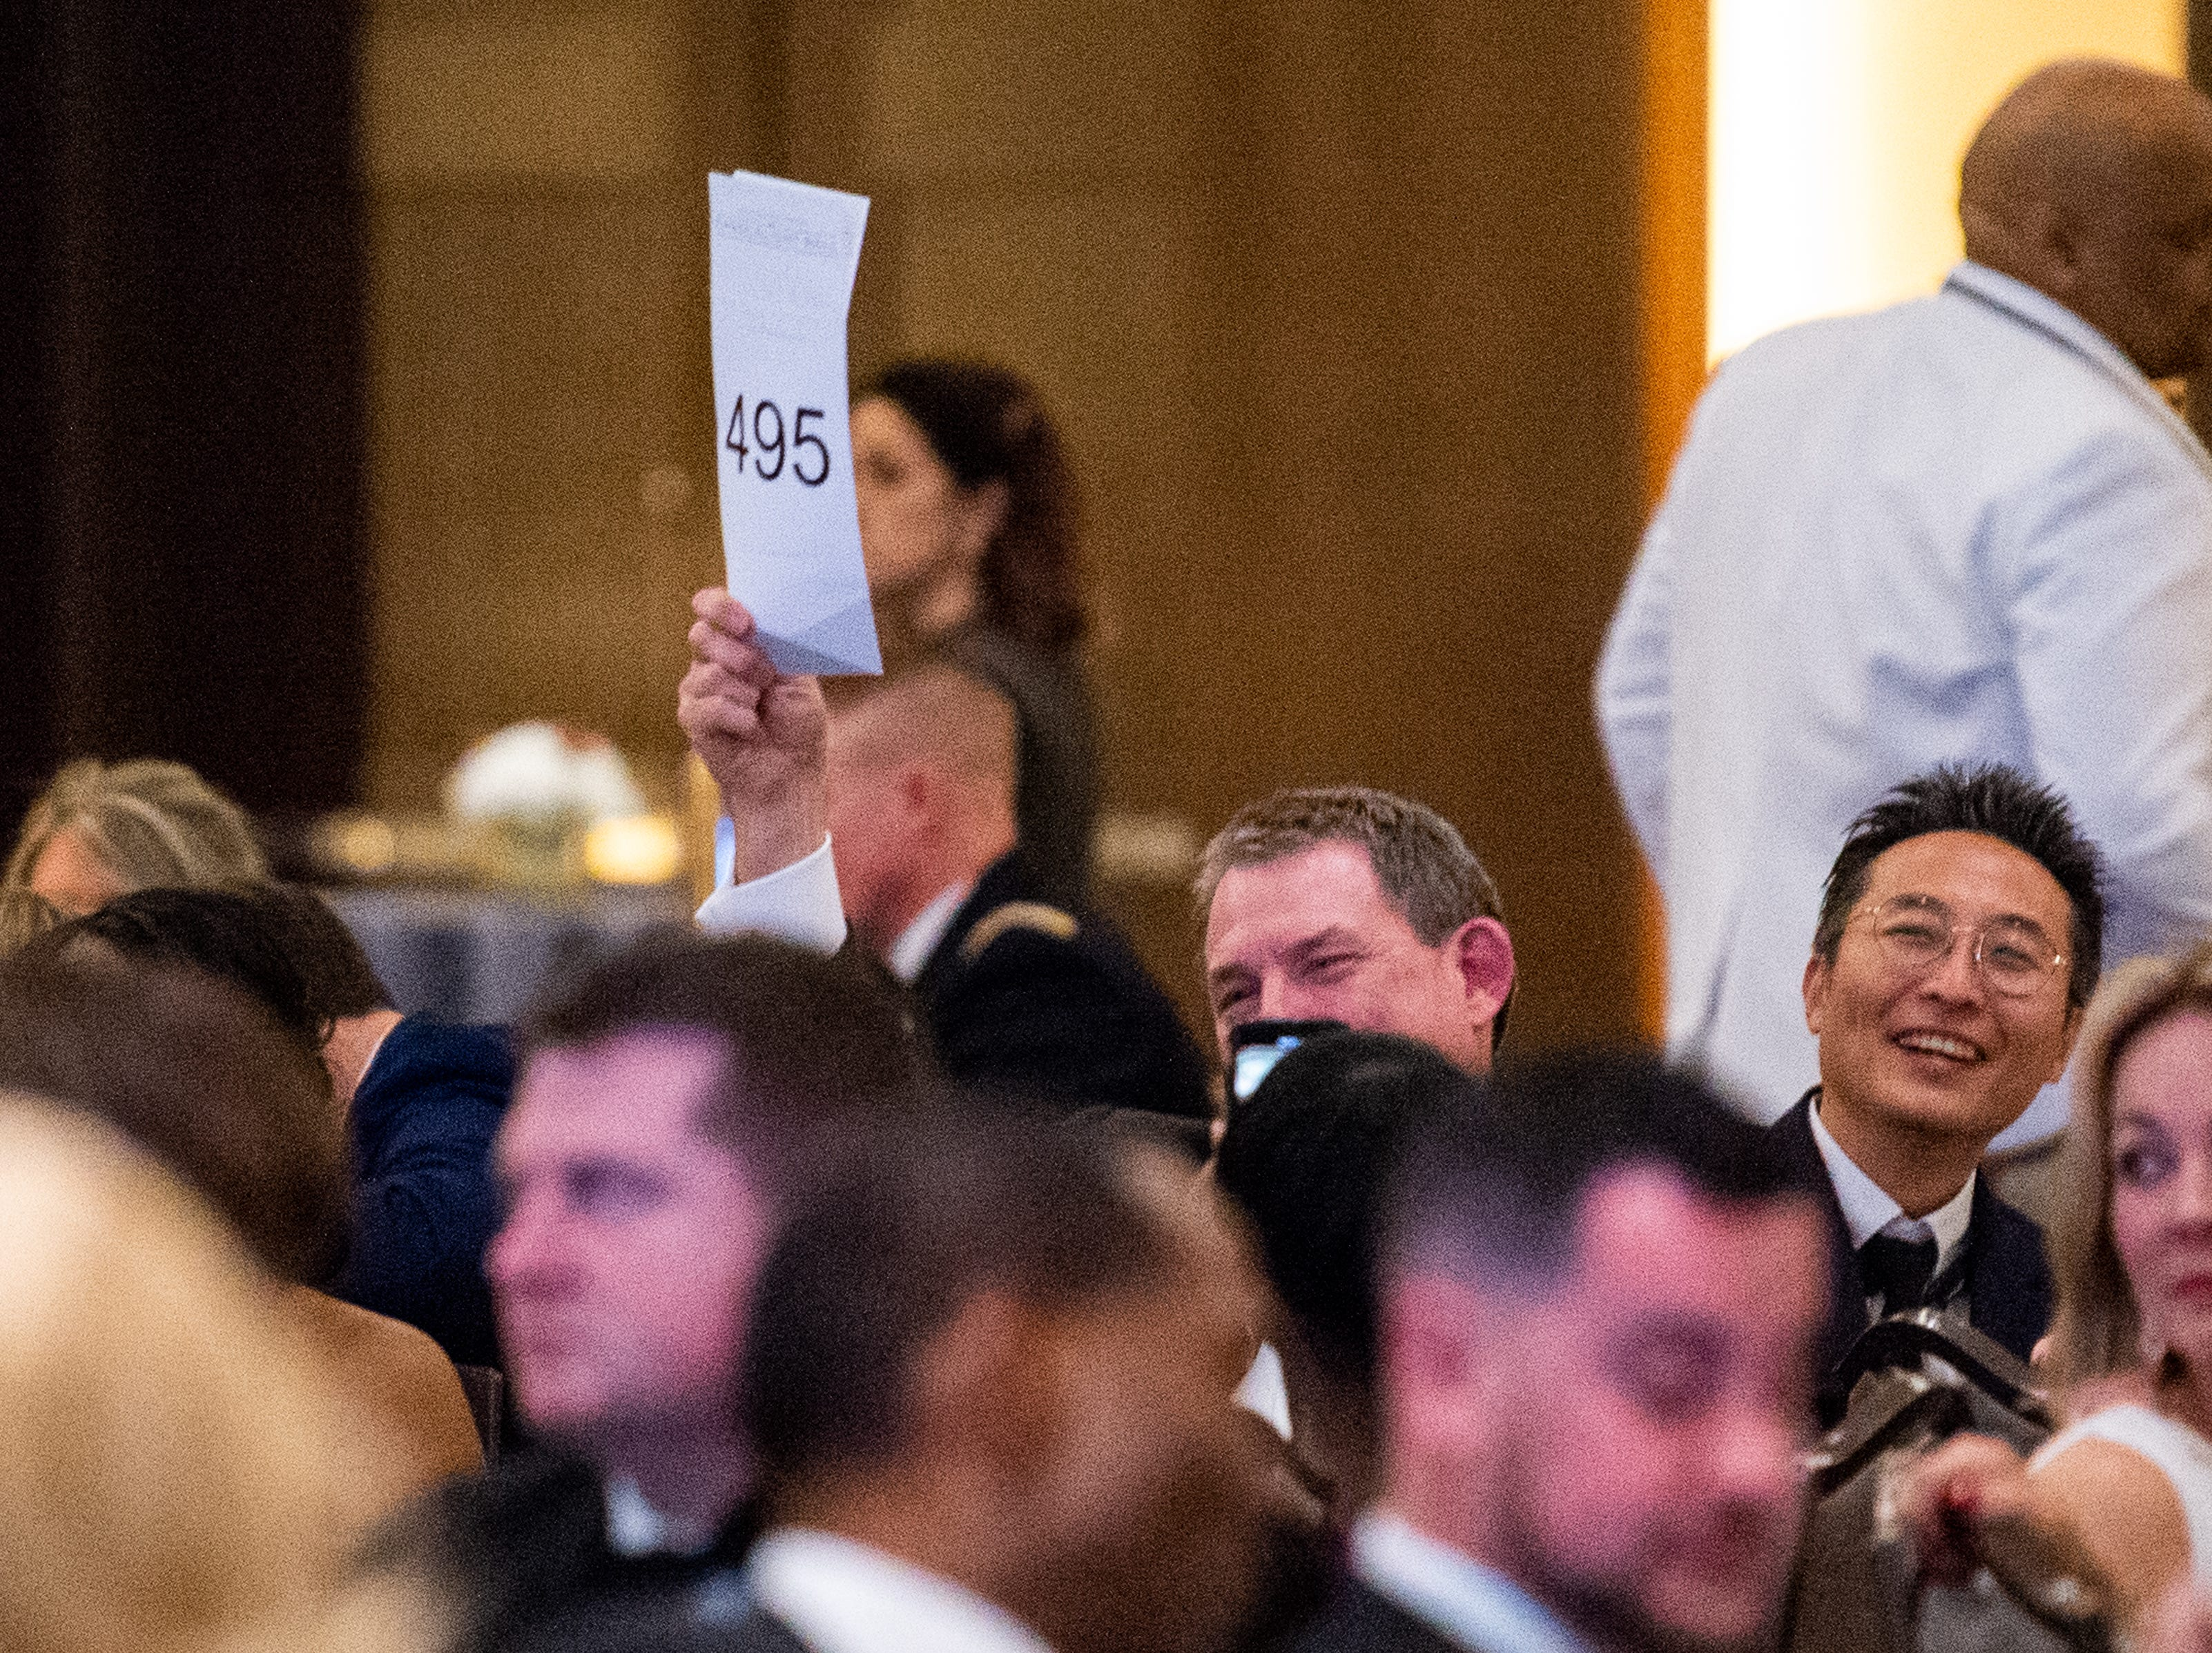 People bid on items to help raise money during Austin Peay State University's annual Candlelight Ball at the Omni Nashville Hotel Saturday, March 16, 2019, in Nashville, Tenn.